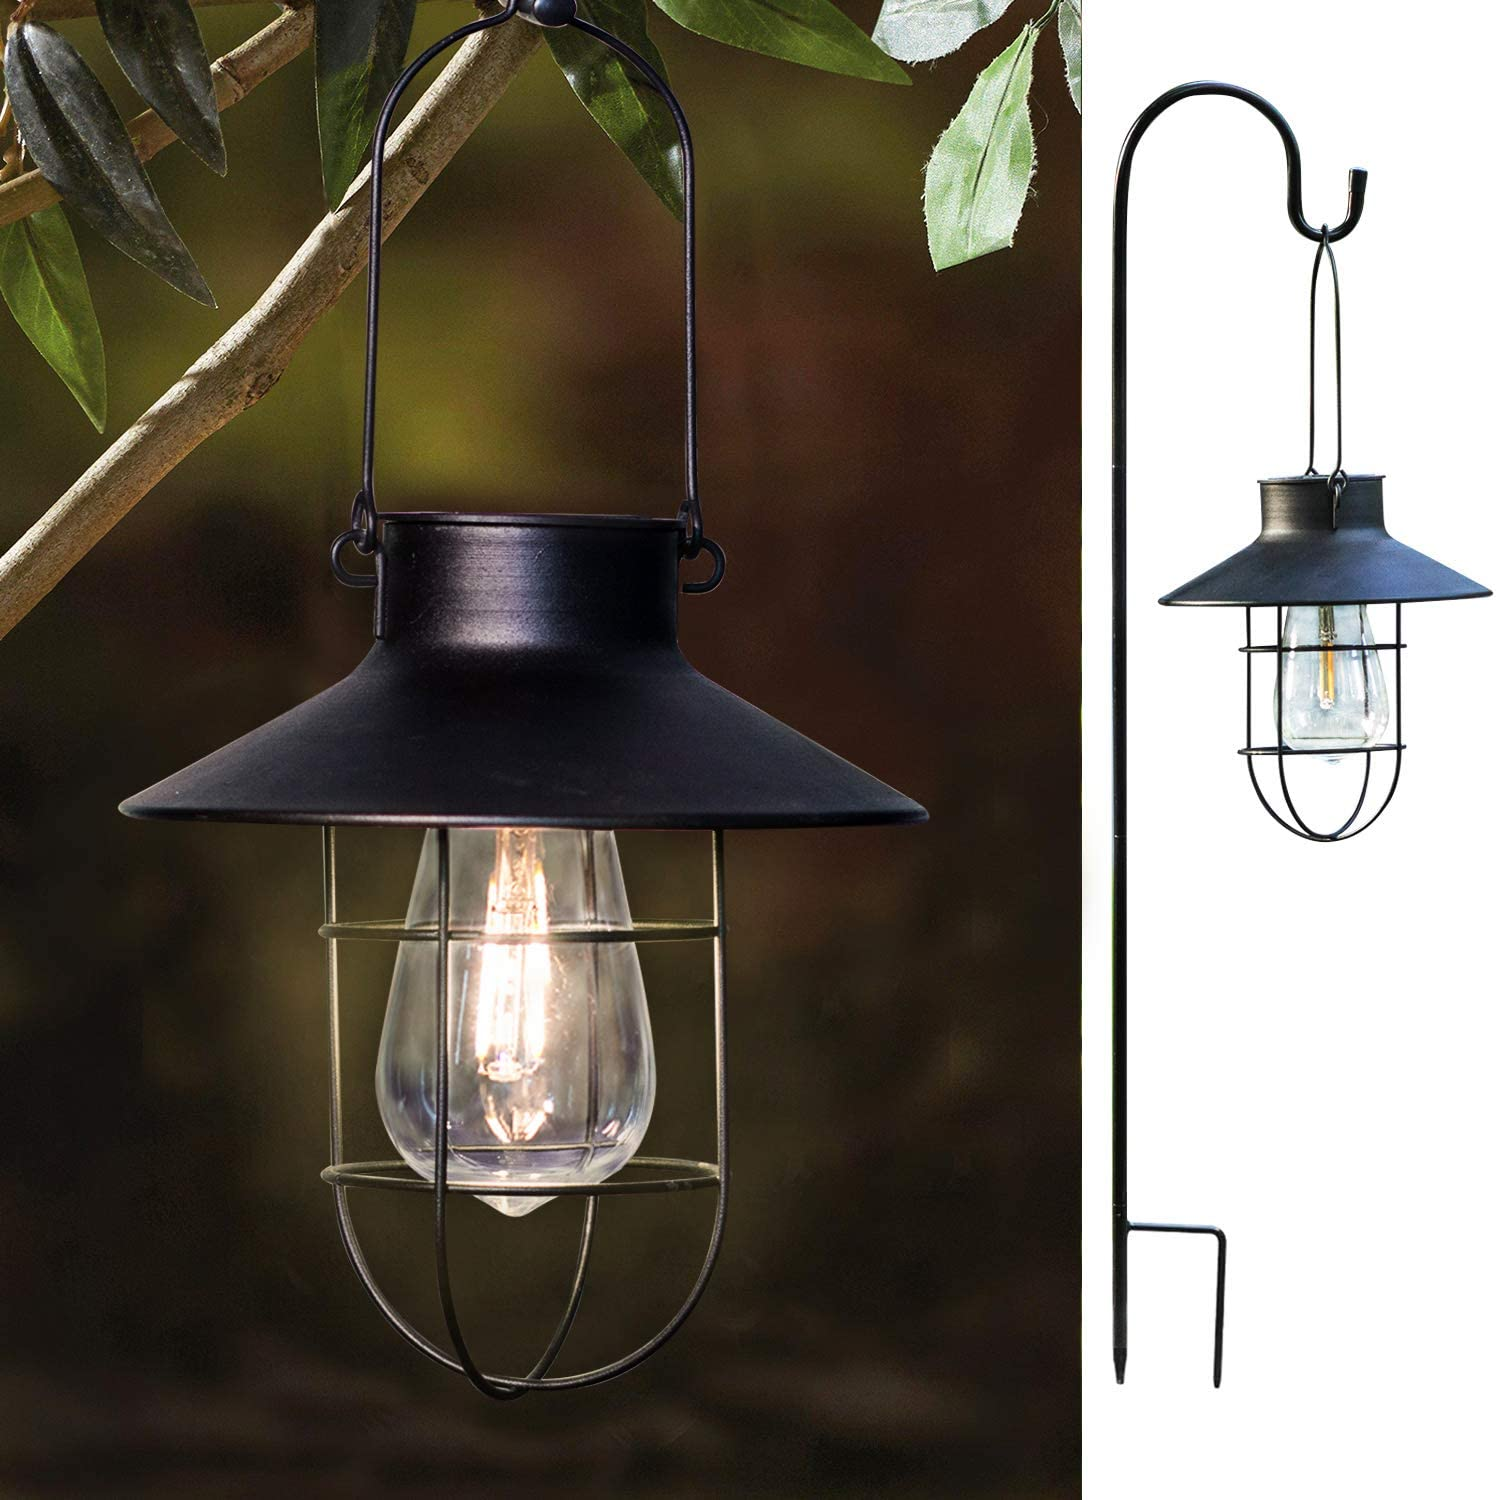 2 Pack EKQ ROJOY Hanging Solar Lights Lantern Lamp with Shepherd Hook, Metal Waterproof Edison Bulb Lights for Garden Outdoor Pathway (Black)